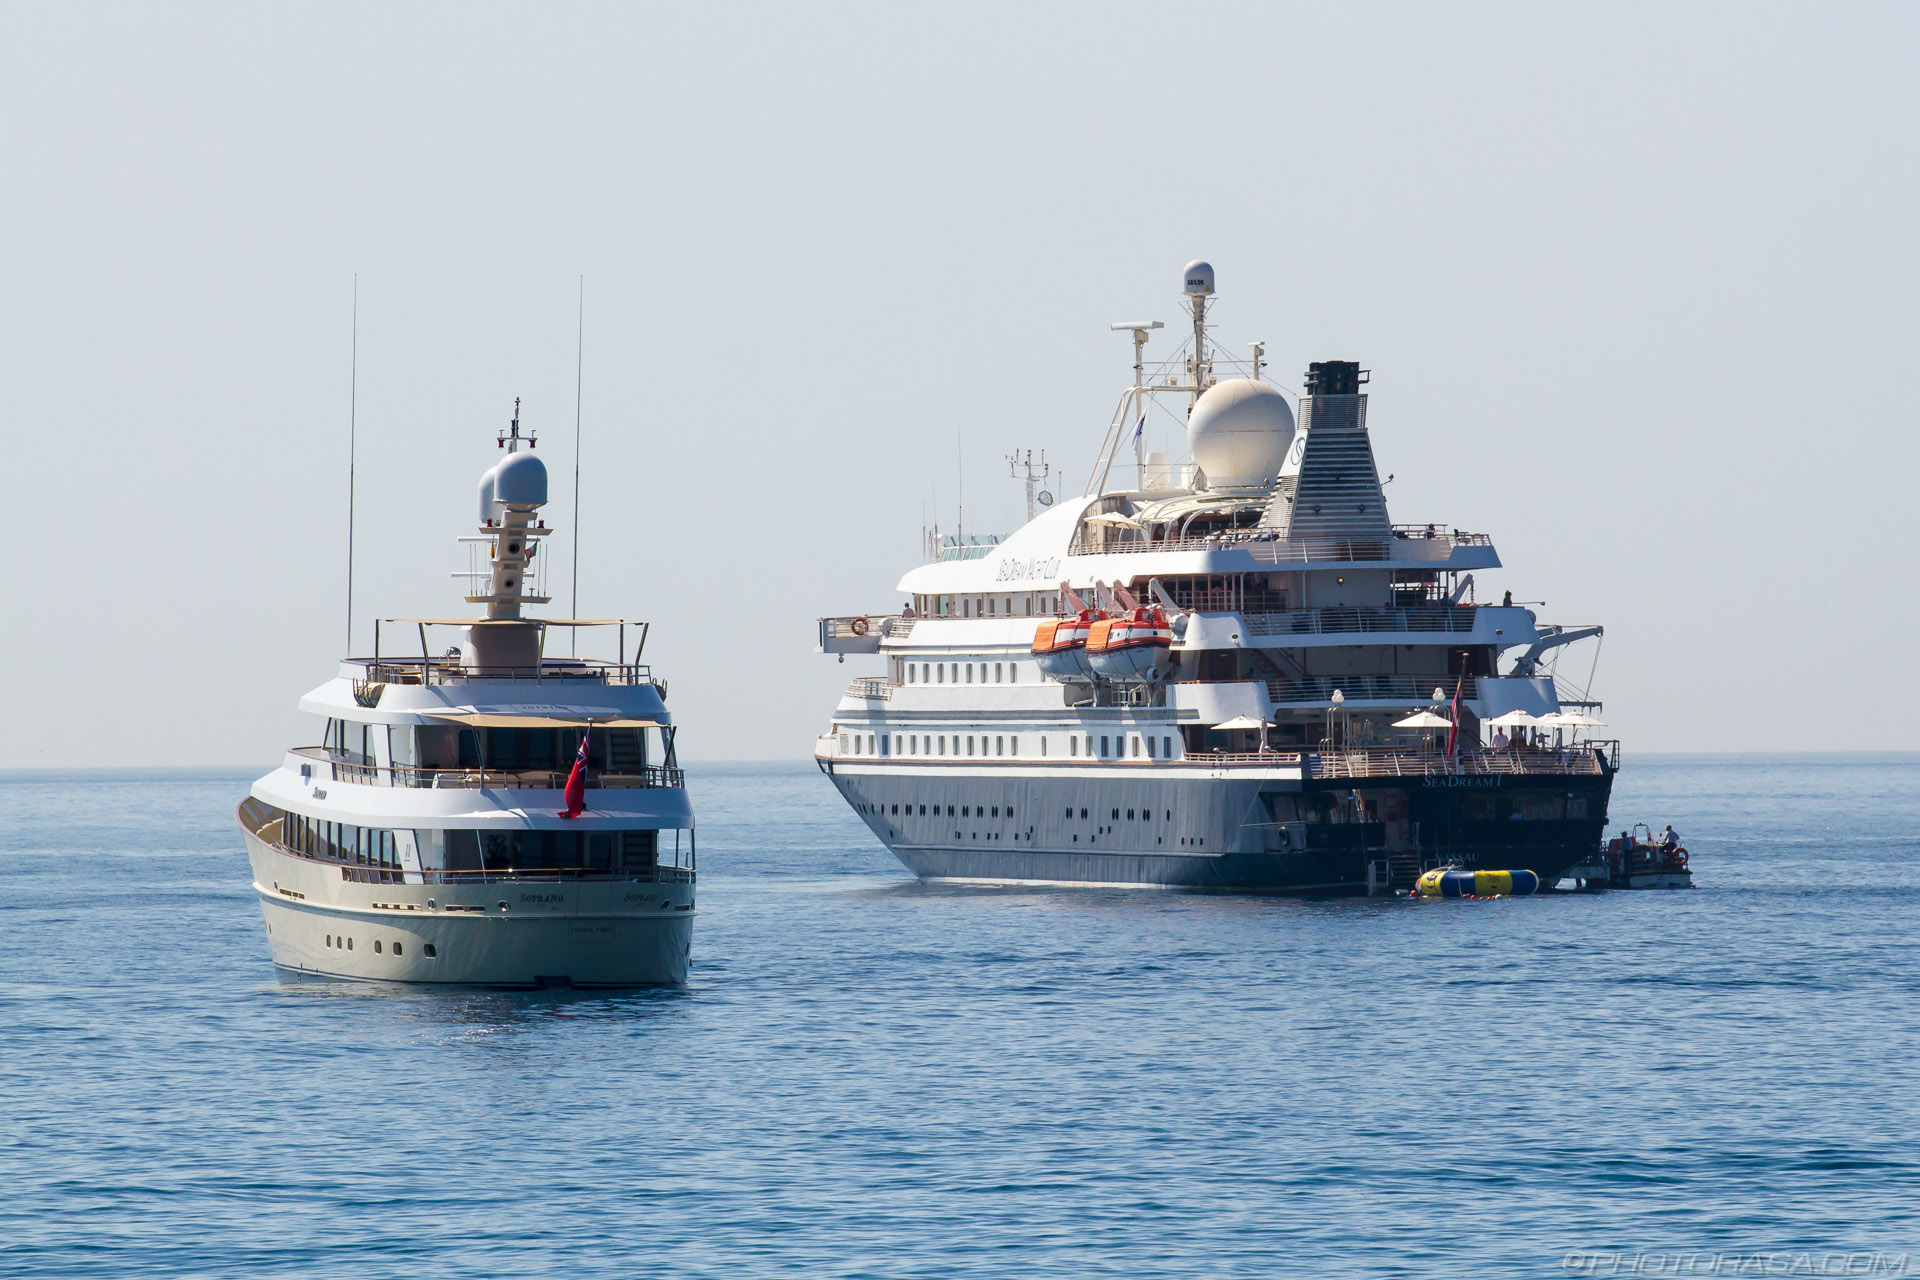 http://photorasa.com/giardini-naxos/two-super-yachts-close-up/